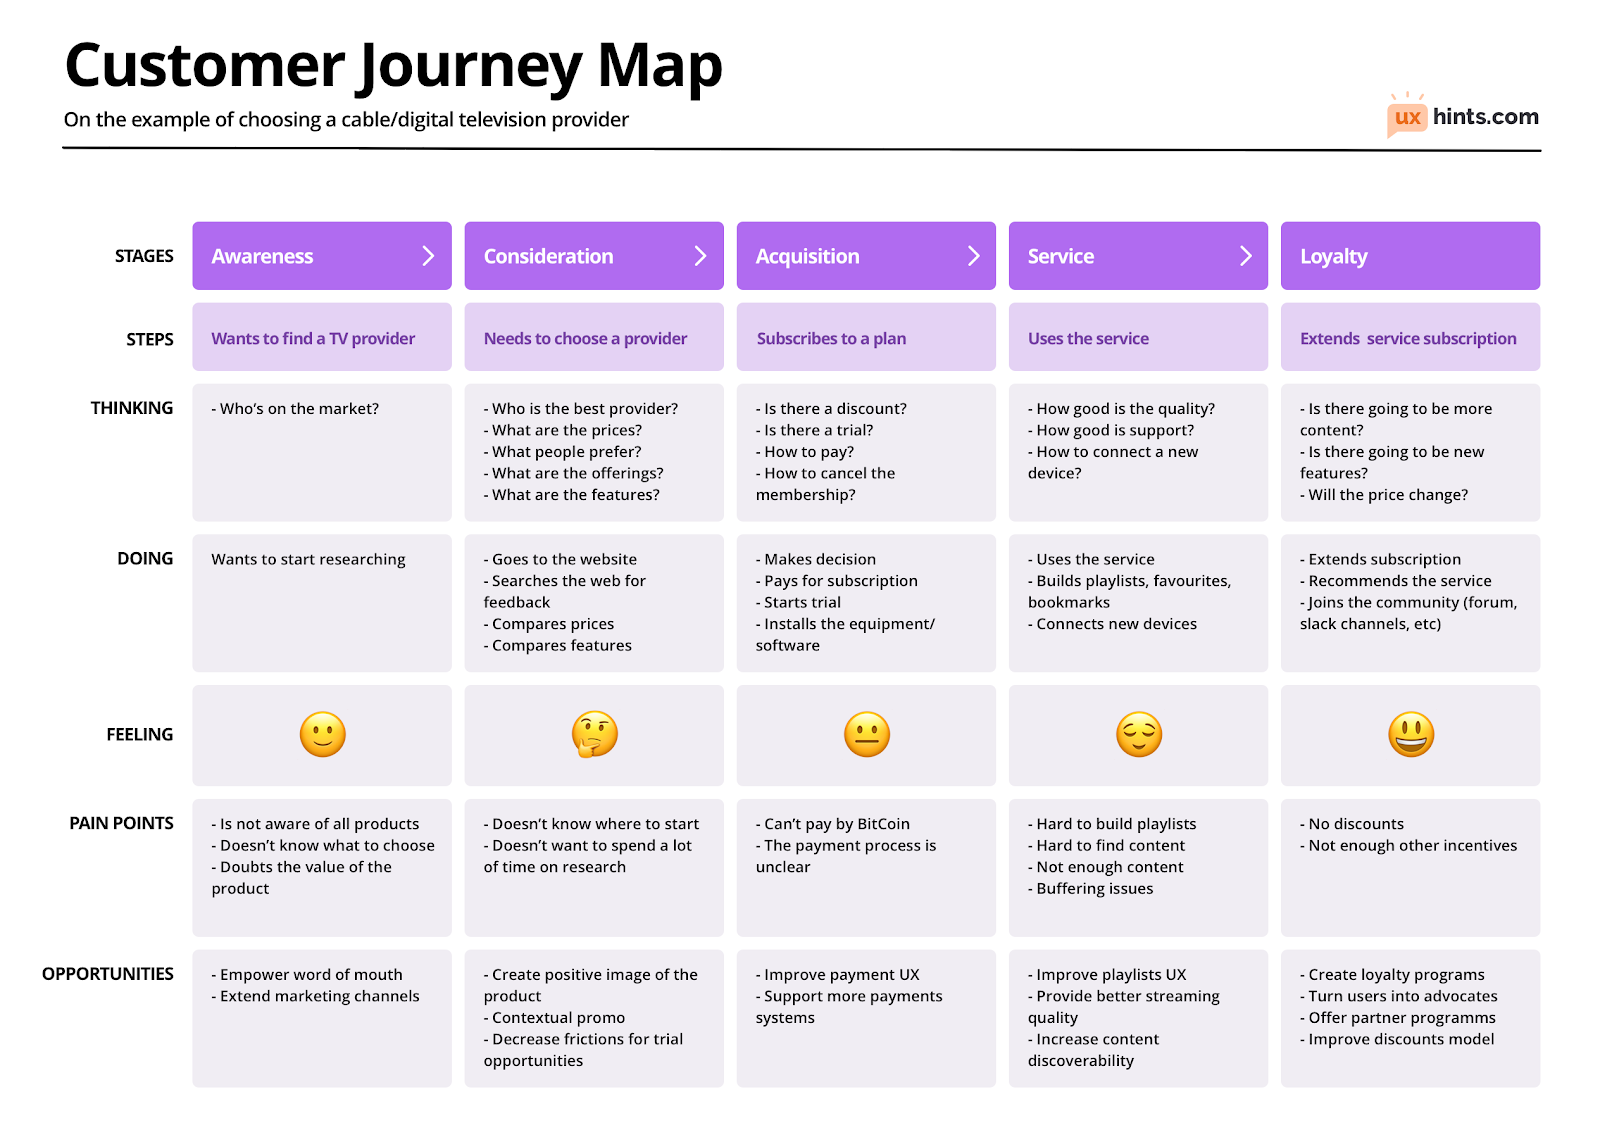 Example of a customer journey map from UX Hints. Includes stages of the customer journey: Awareness, Consideration, Acquisition, Service, and Loyalty. At each stage, in the column is step of the customer journey, followed by customer's thinking, doing, feeling, and pain points. In the last row is opportunities for the company.